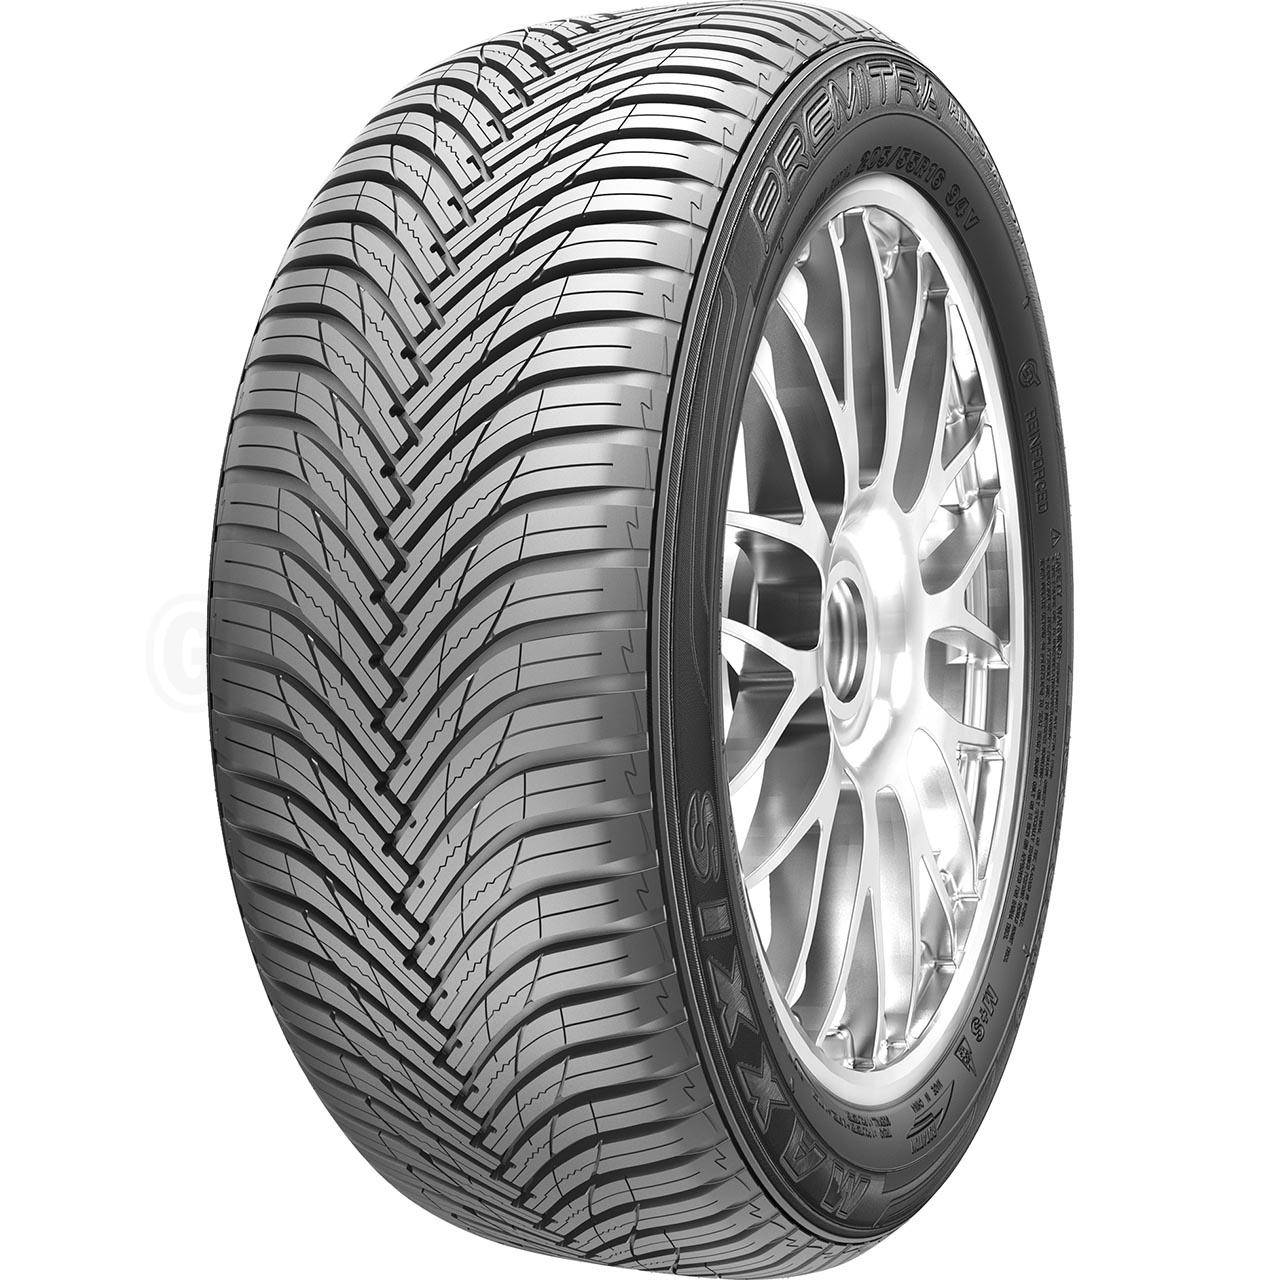 Maxxis Premitra ALL Season AP3 225/40R18 92W XL